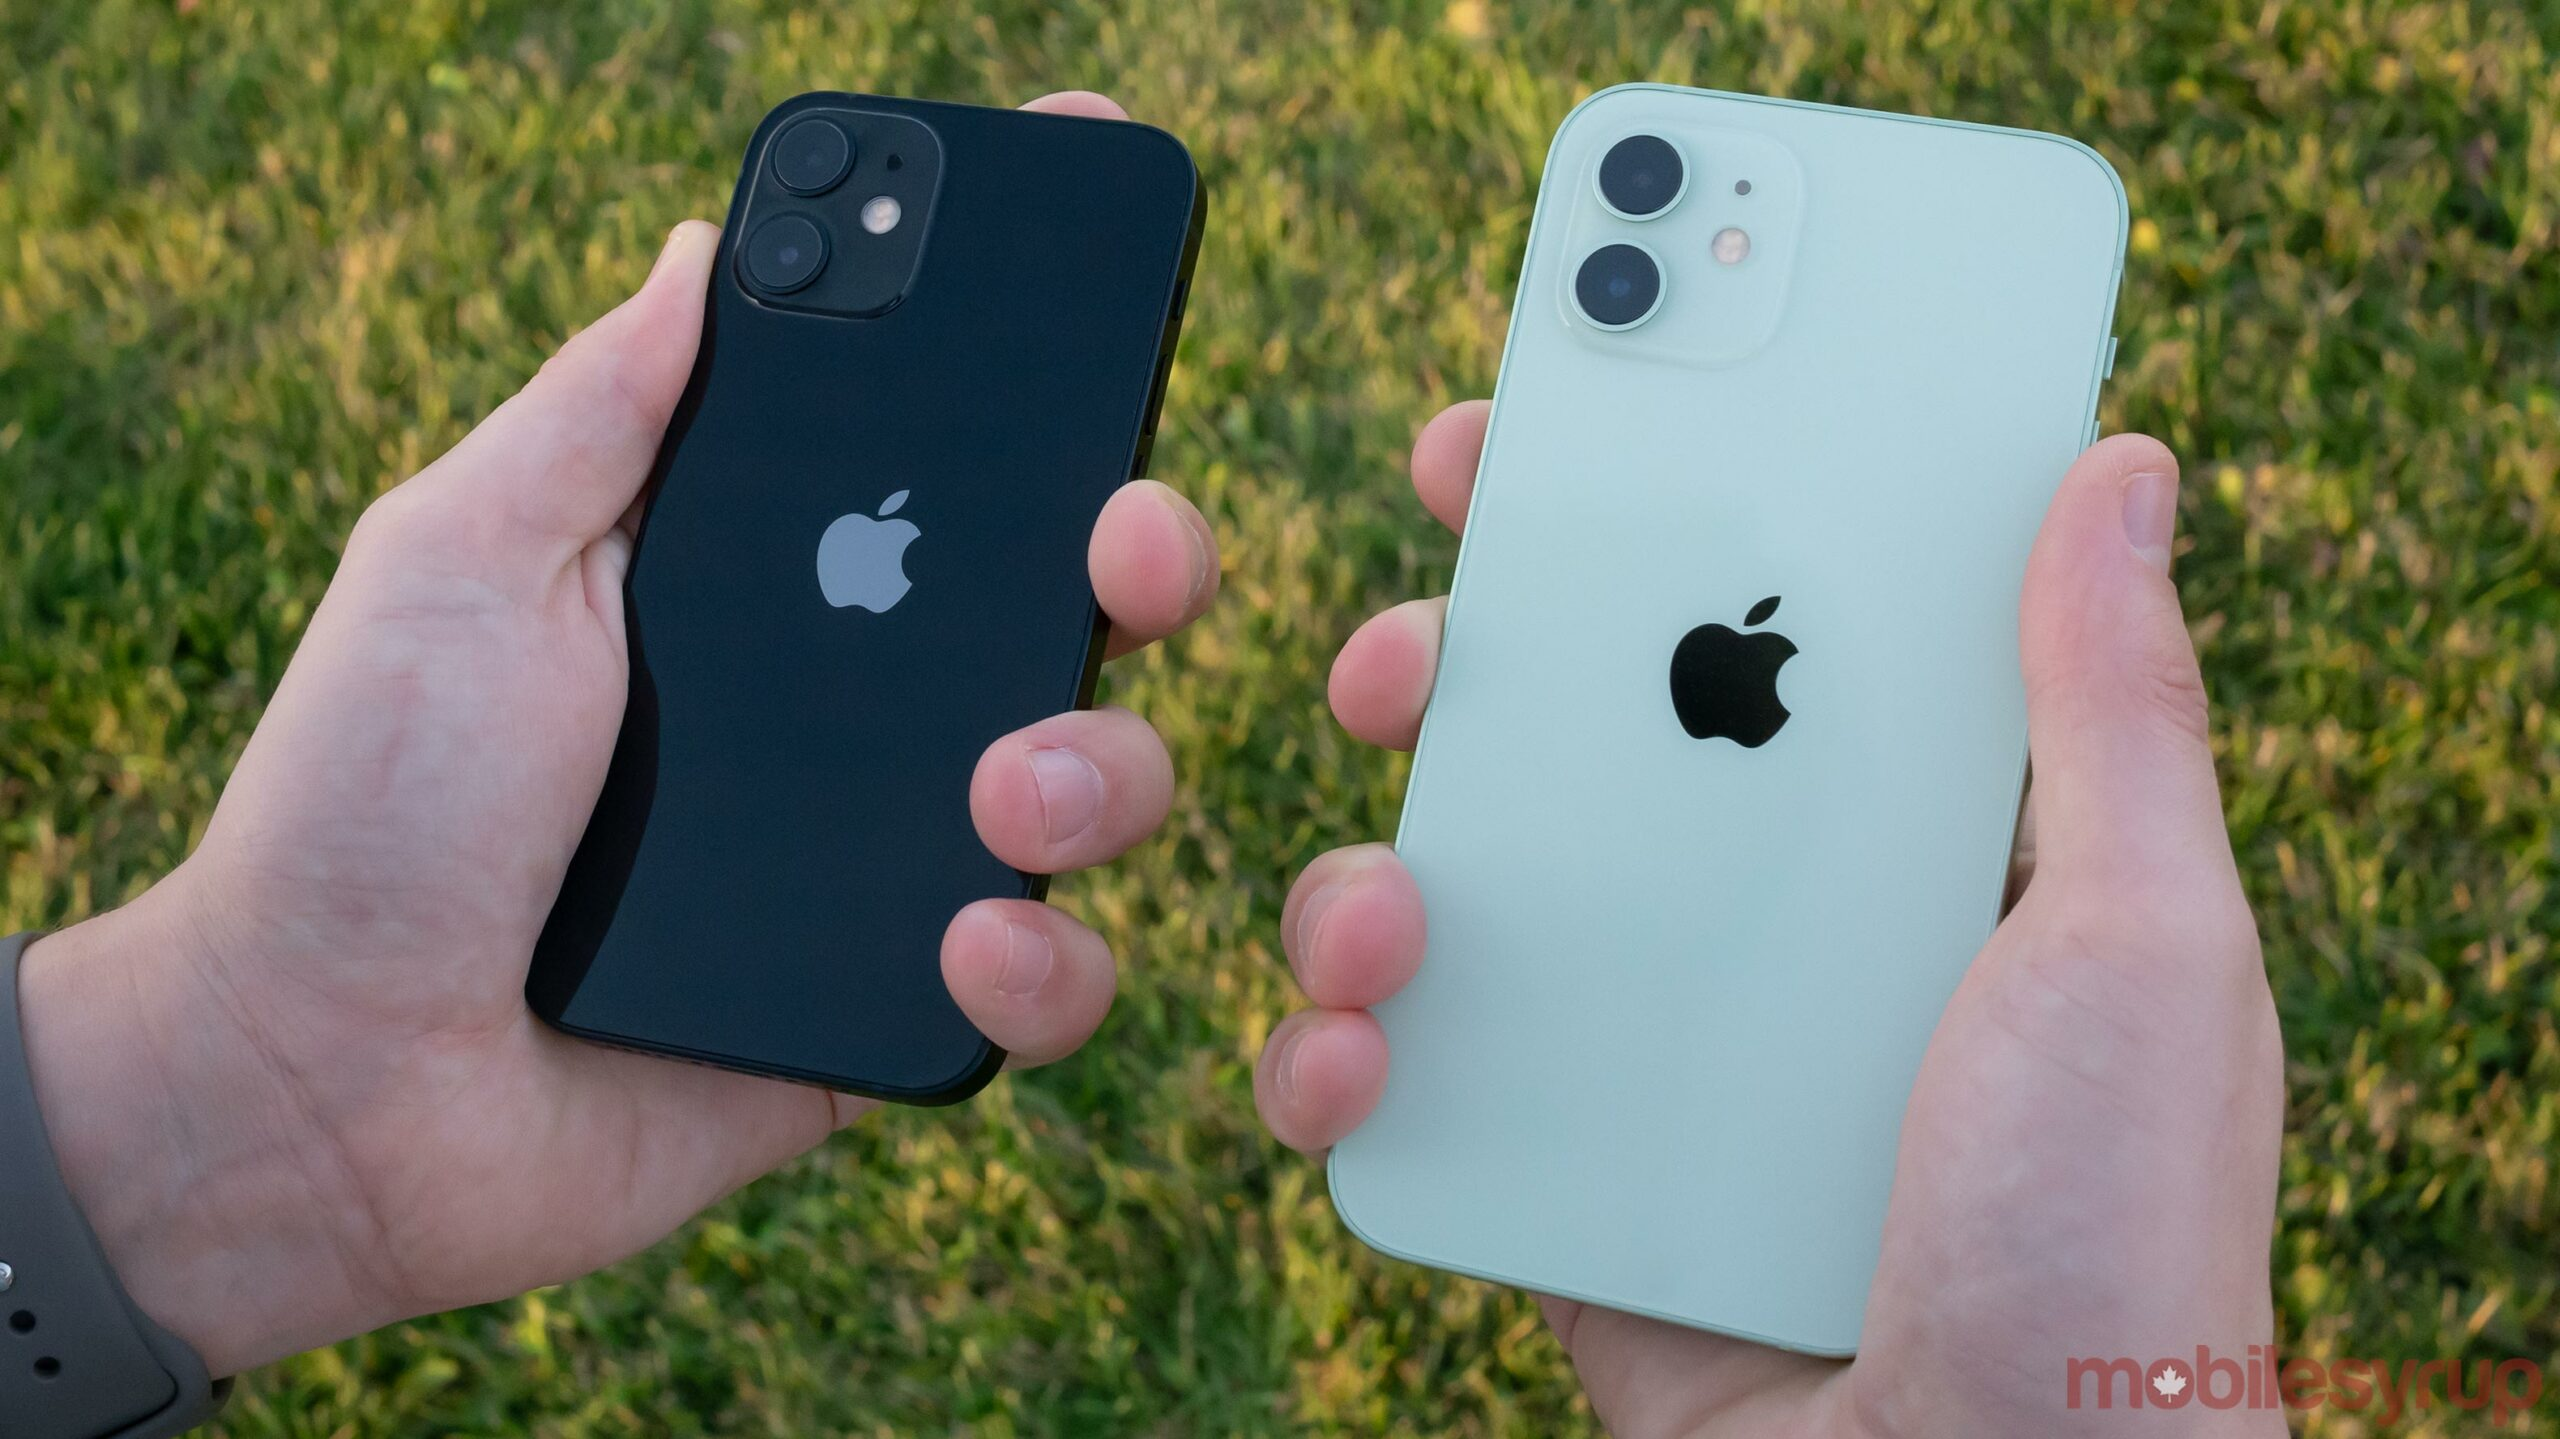 iPhone 12 mini and iPhone 12 Pro